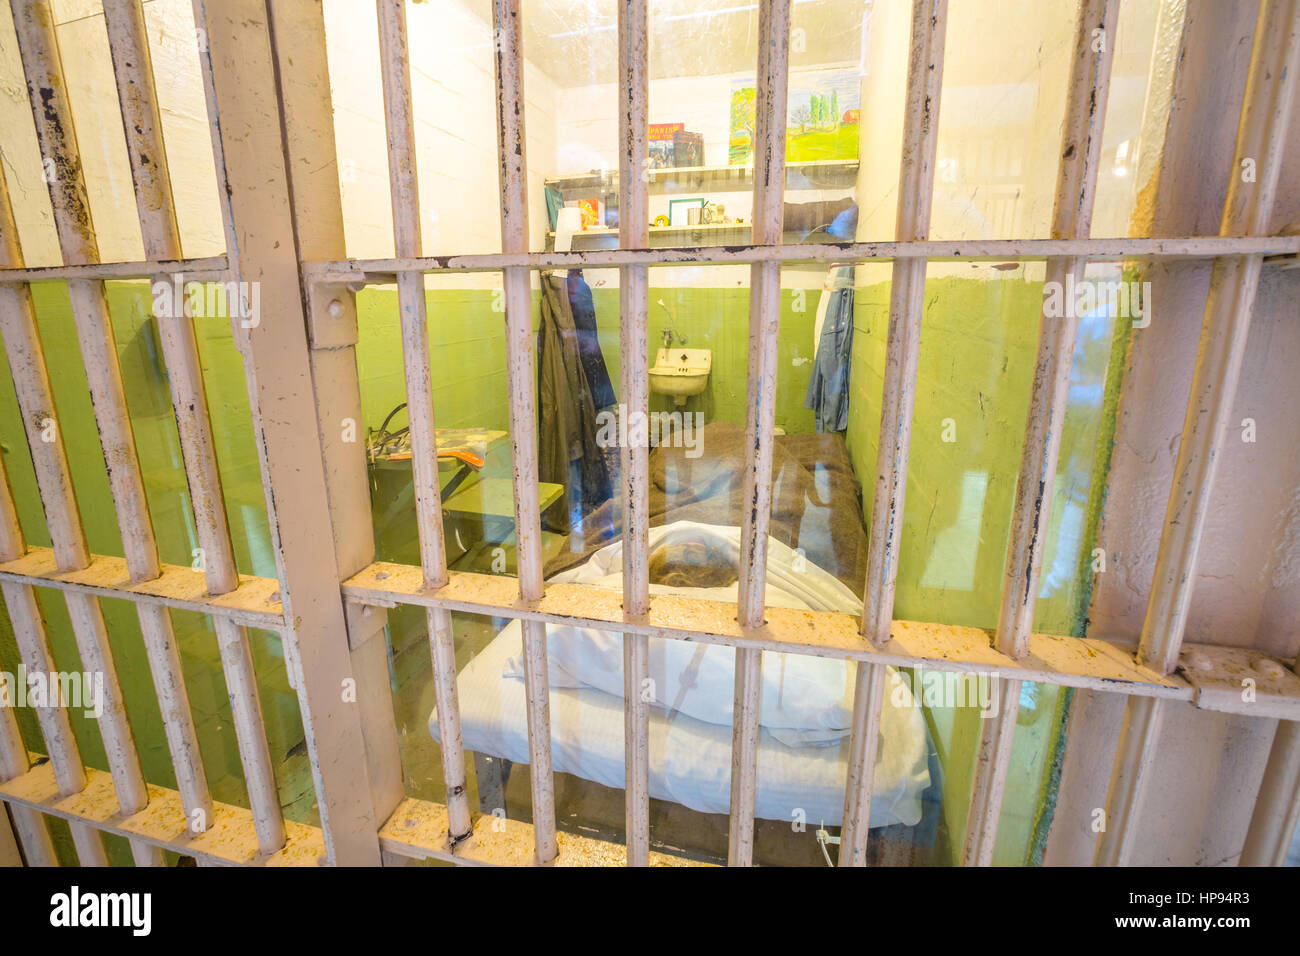 San Francisco, California, United States - August 14, 2016: detail inside Alcatraz famous cell of character painter - Stock Image